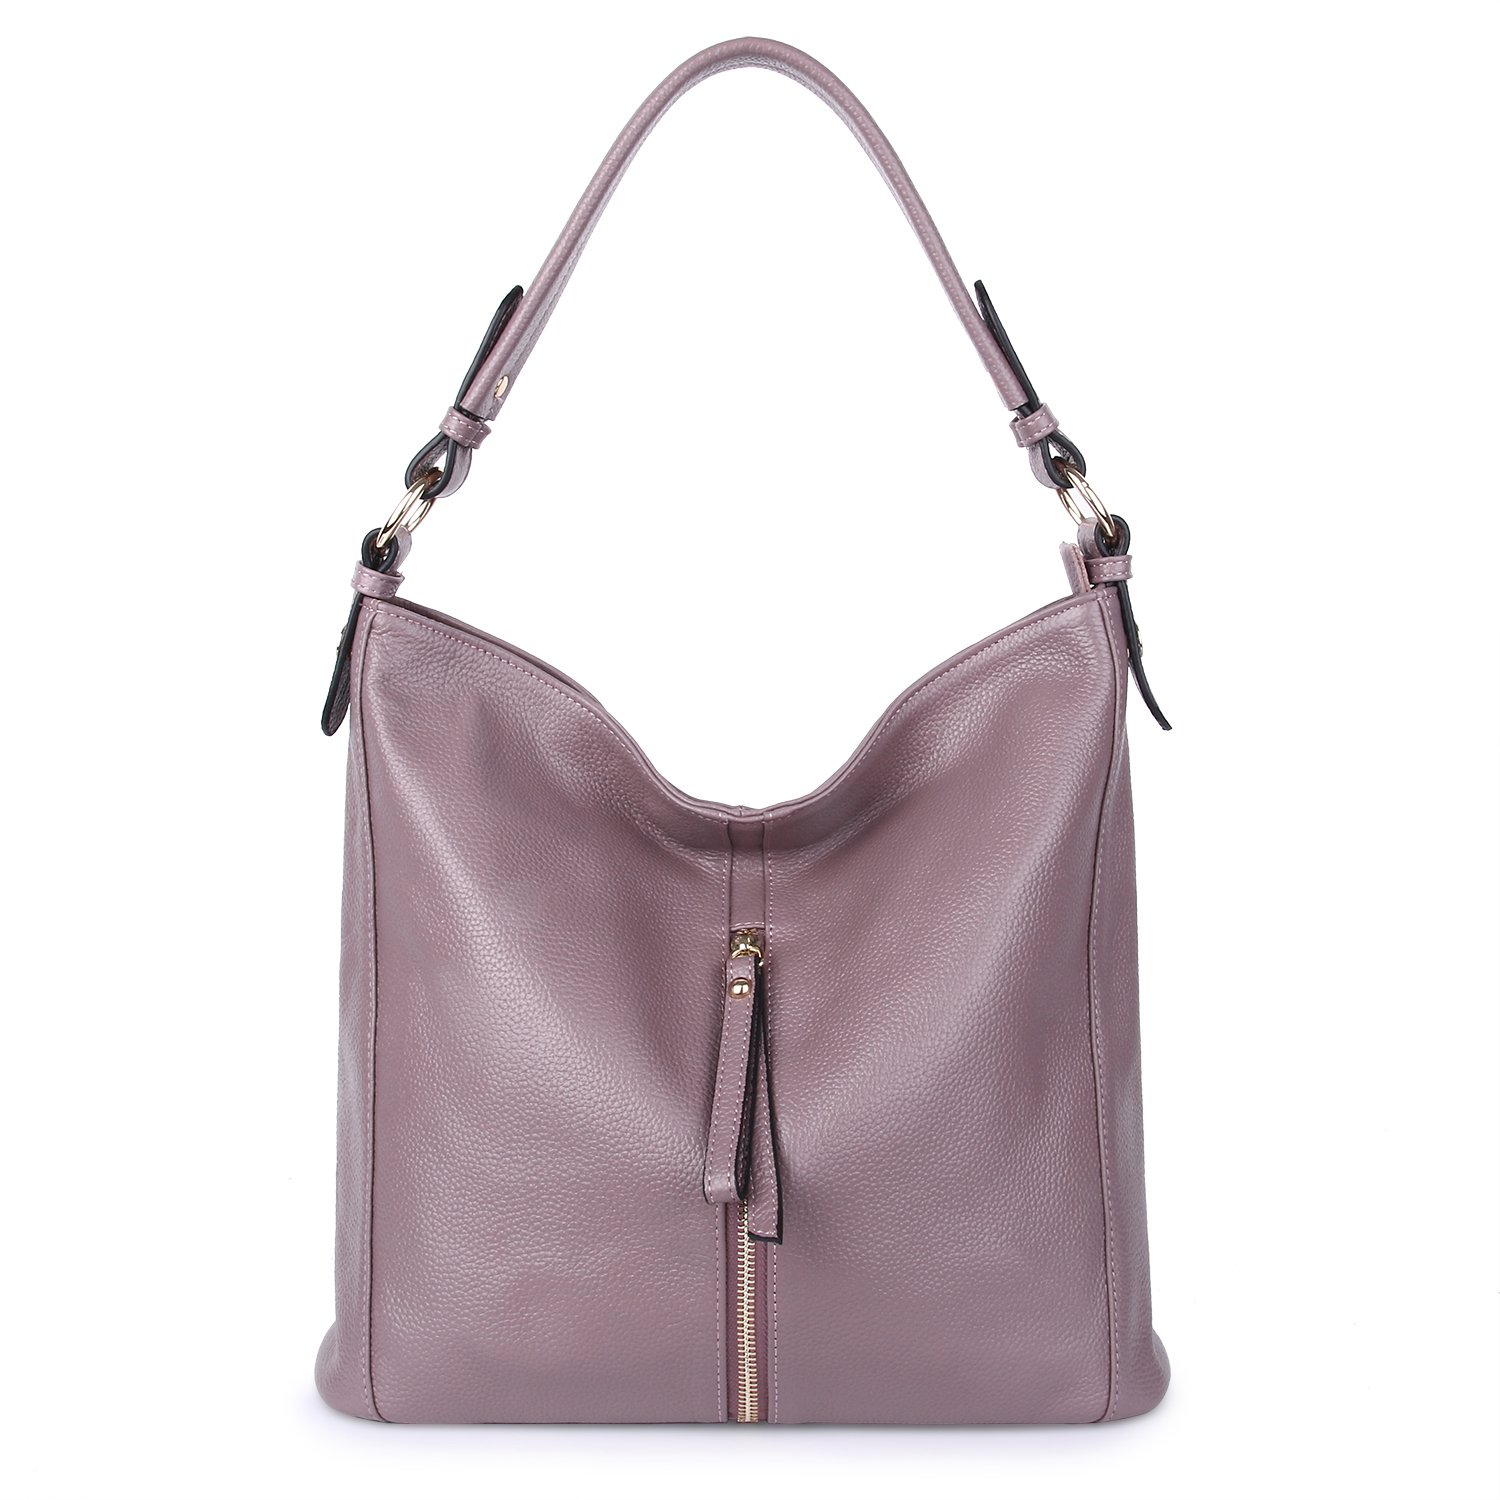 a5939cfb0a28 YALUXE Genuine Leather Shoulder Bag Purse Hobo Tote for Womens purple